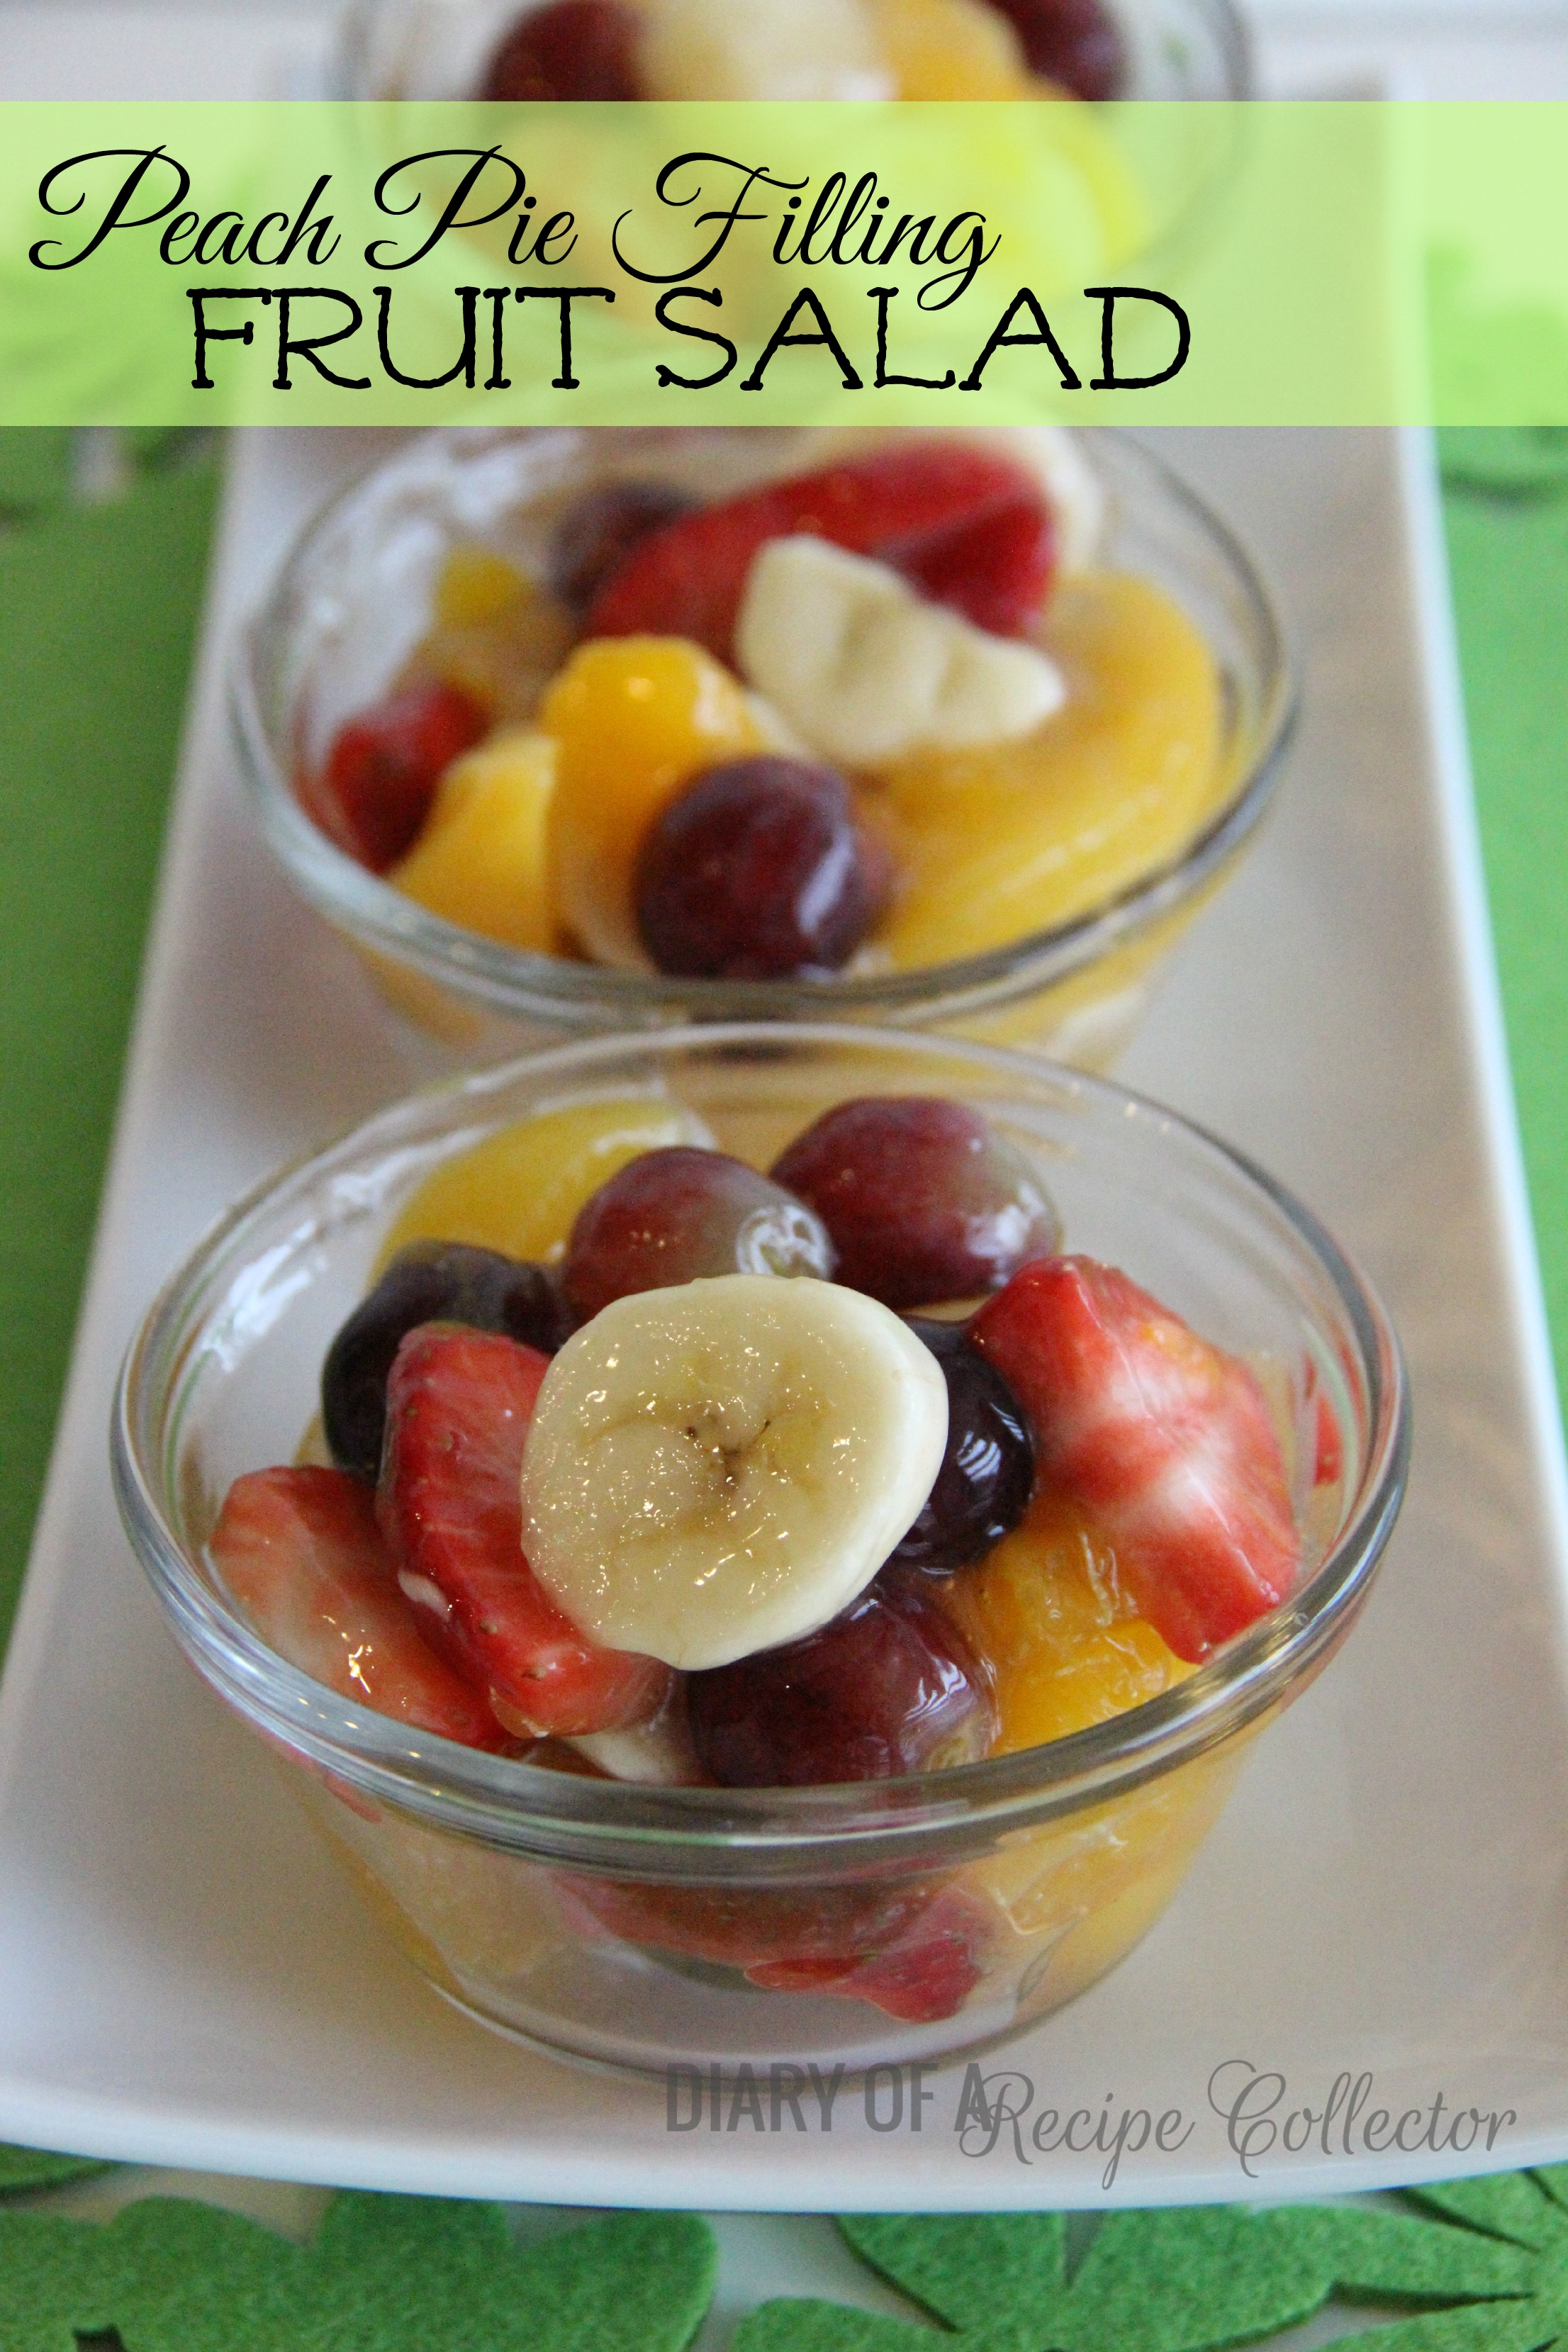 Diary Of A Recipe Collector Peach Pie Filling Fruit Salad